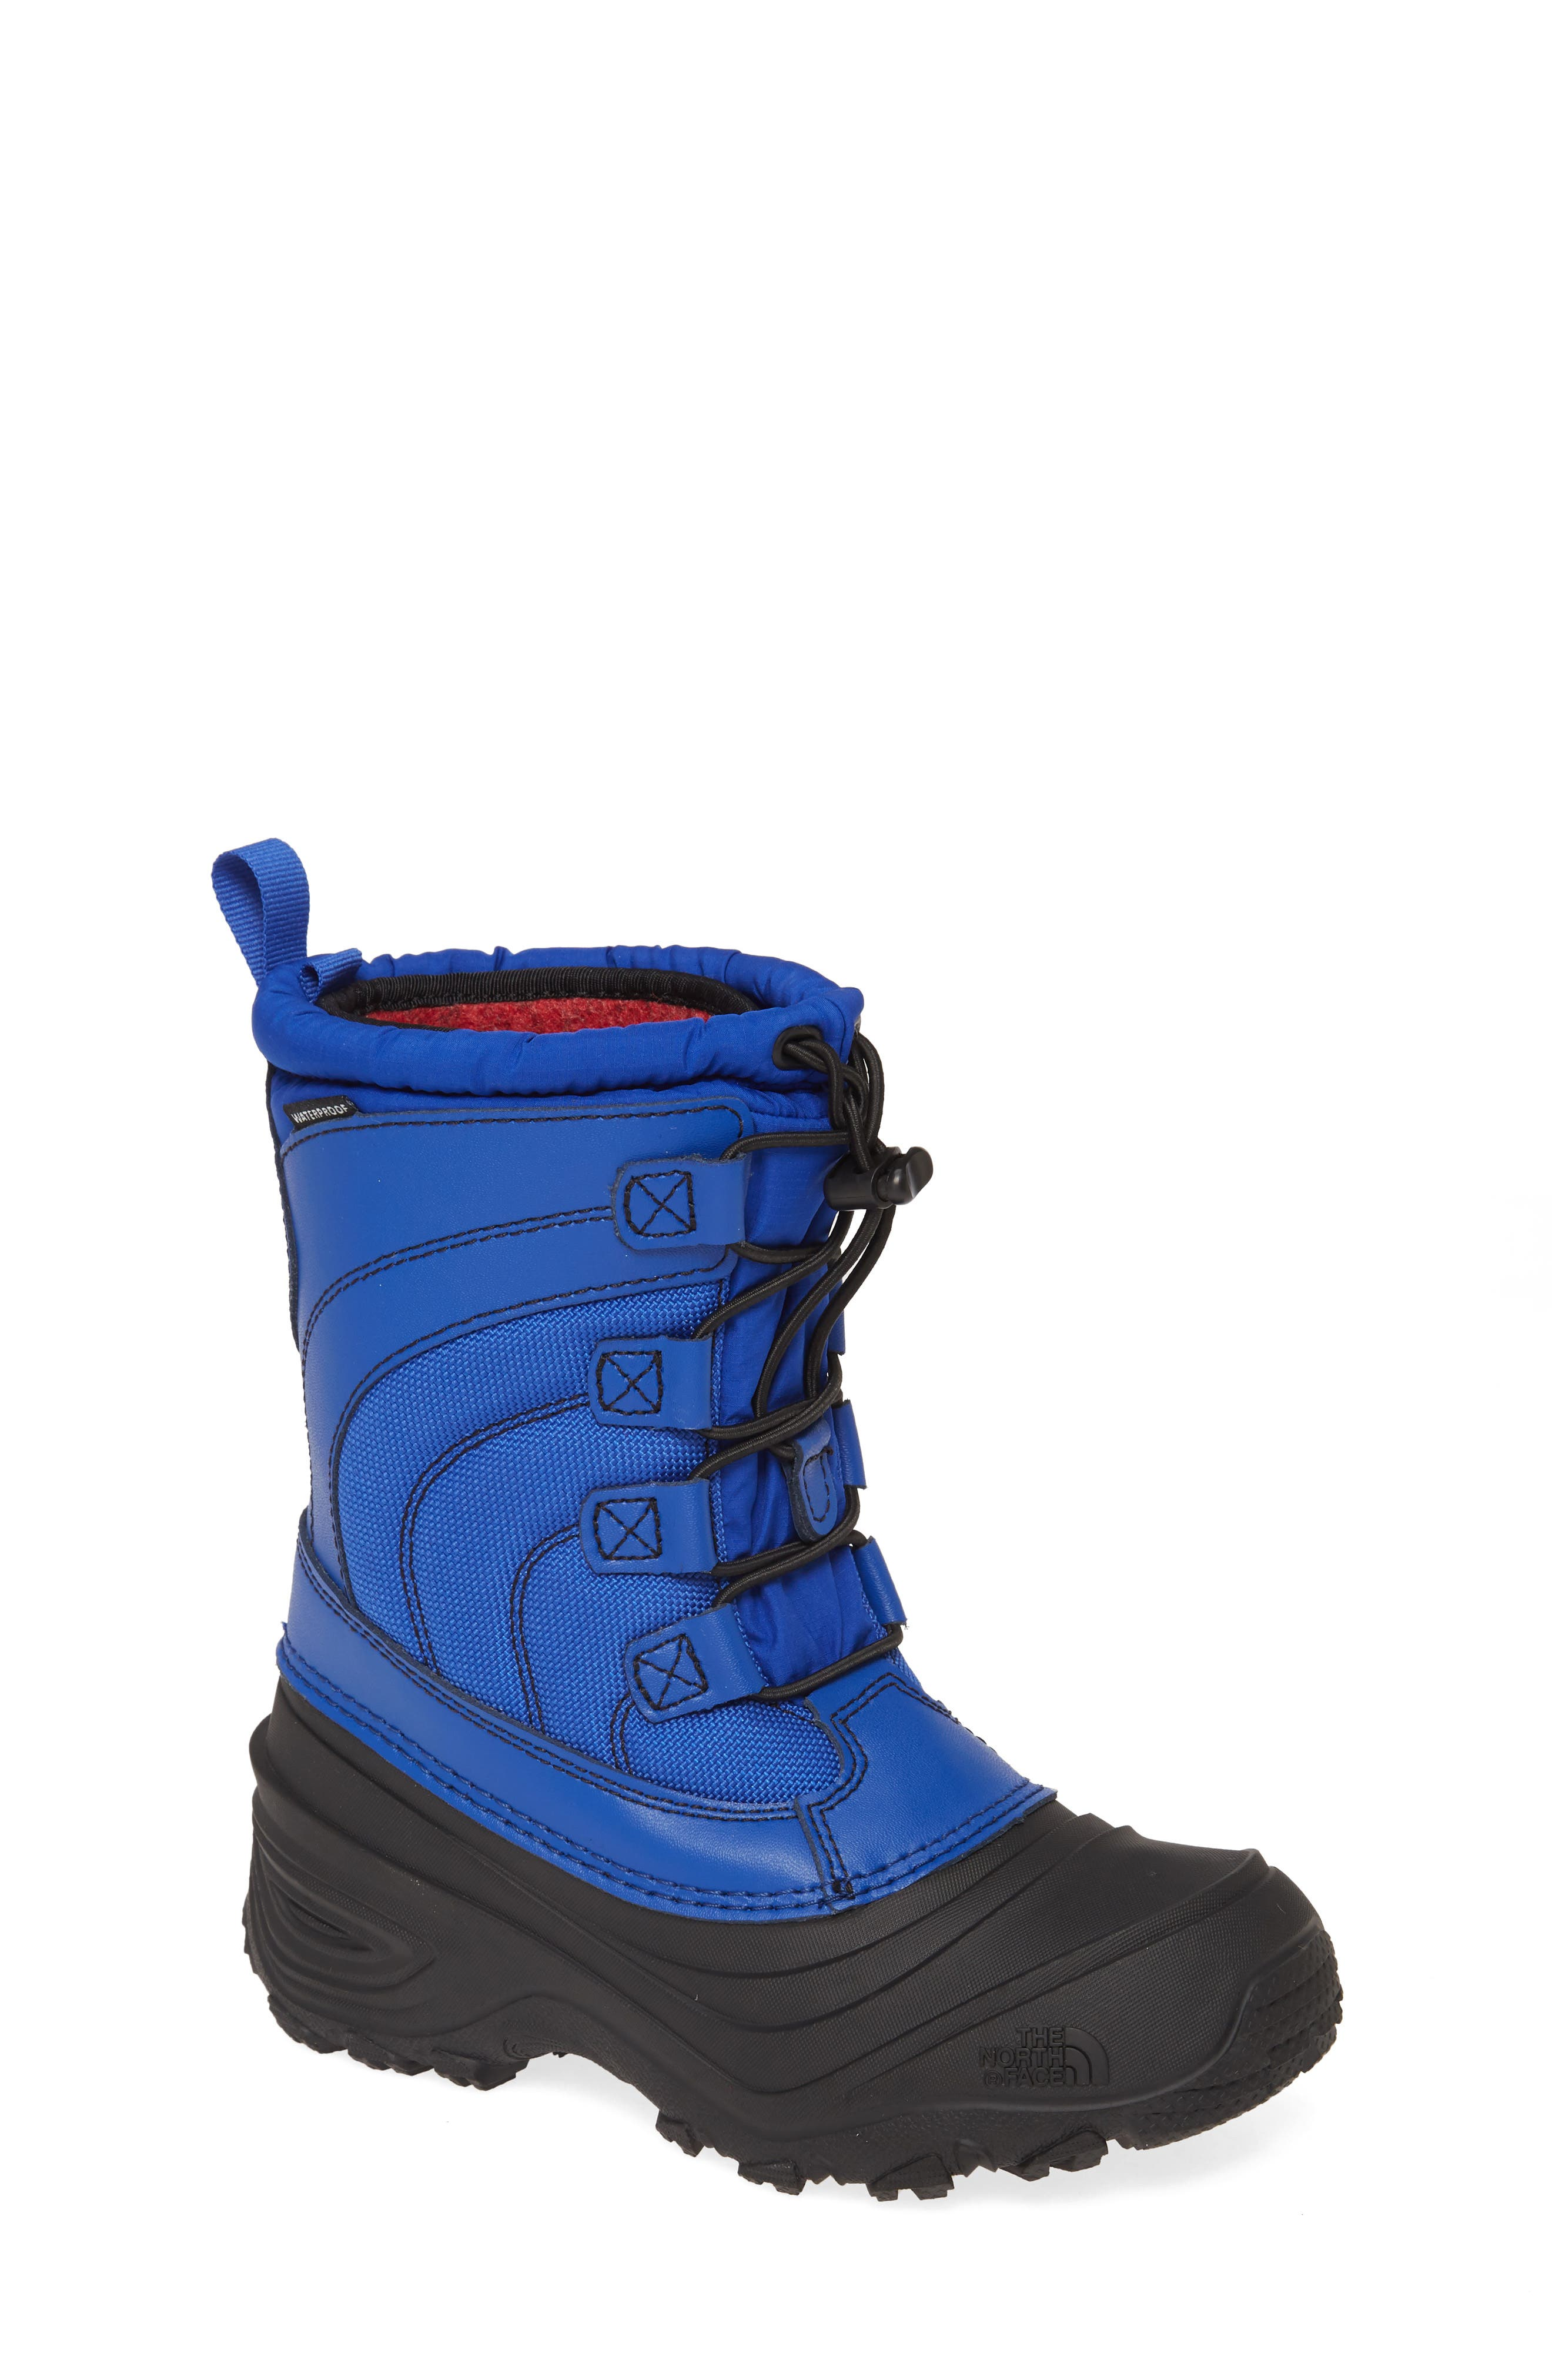 Kids' The North Face Shoes   Nordstrom